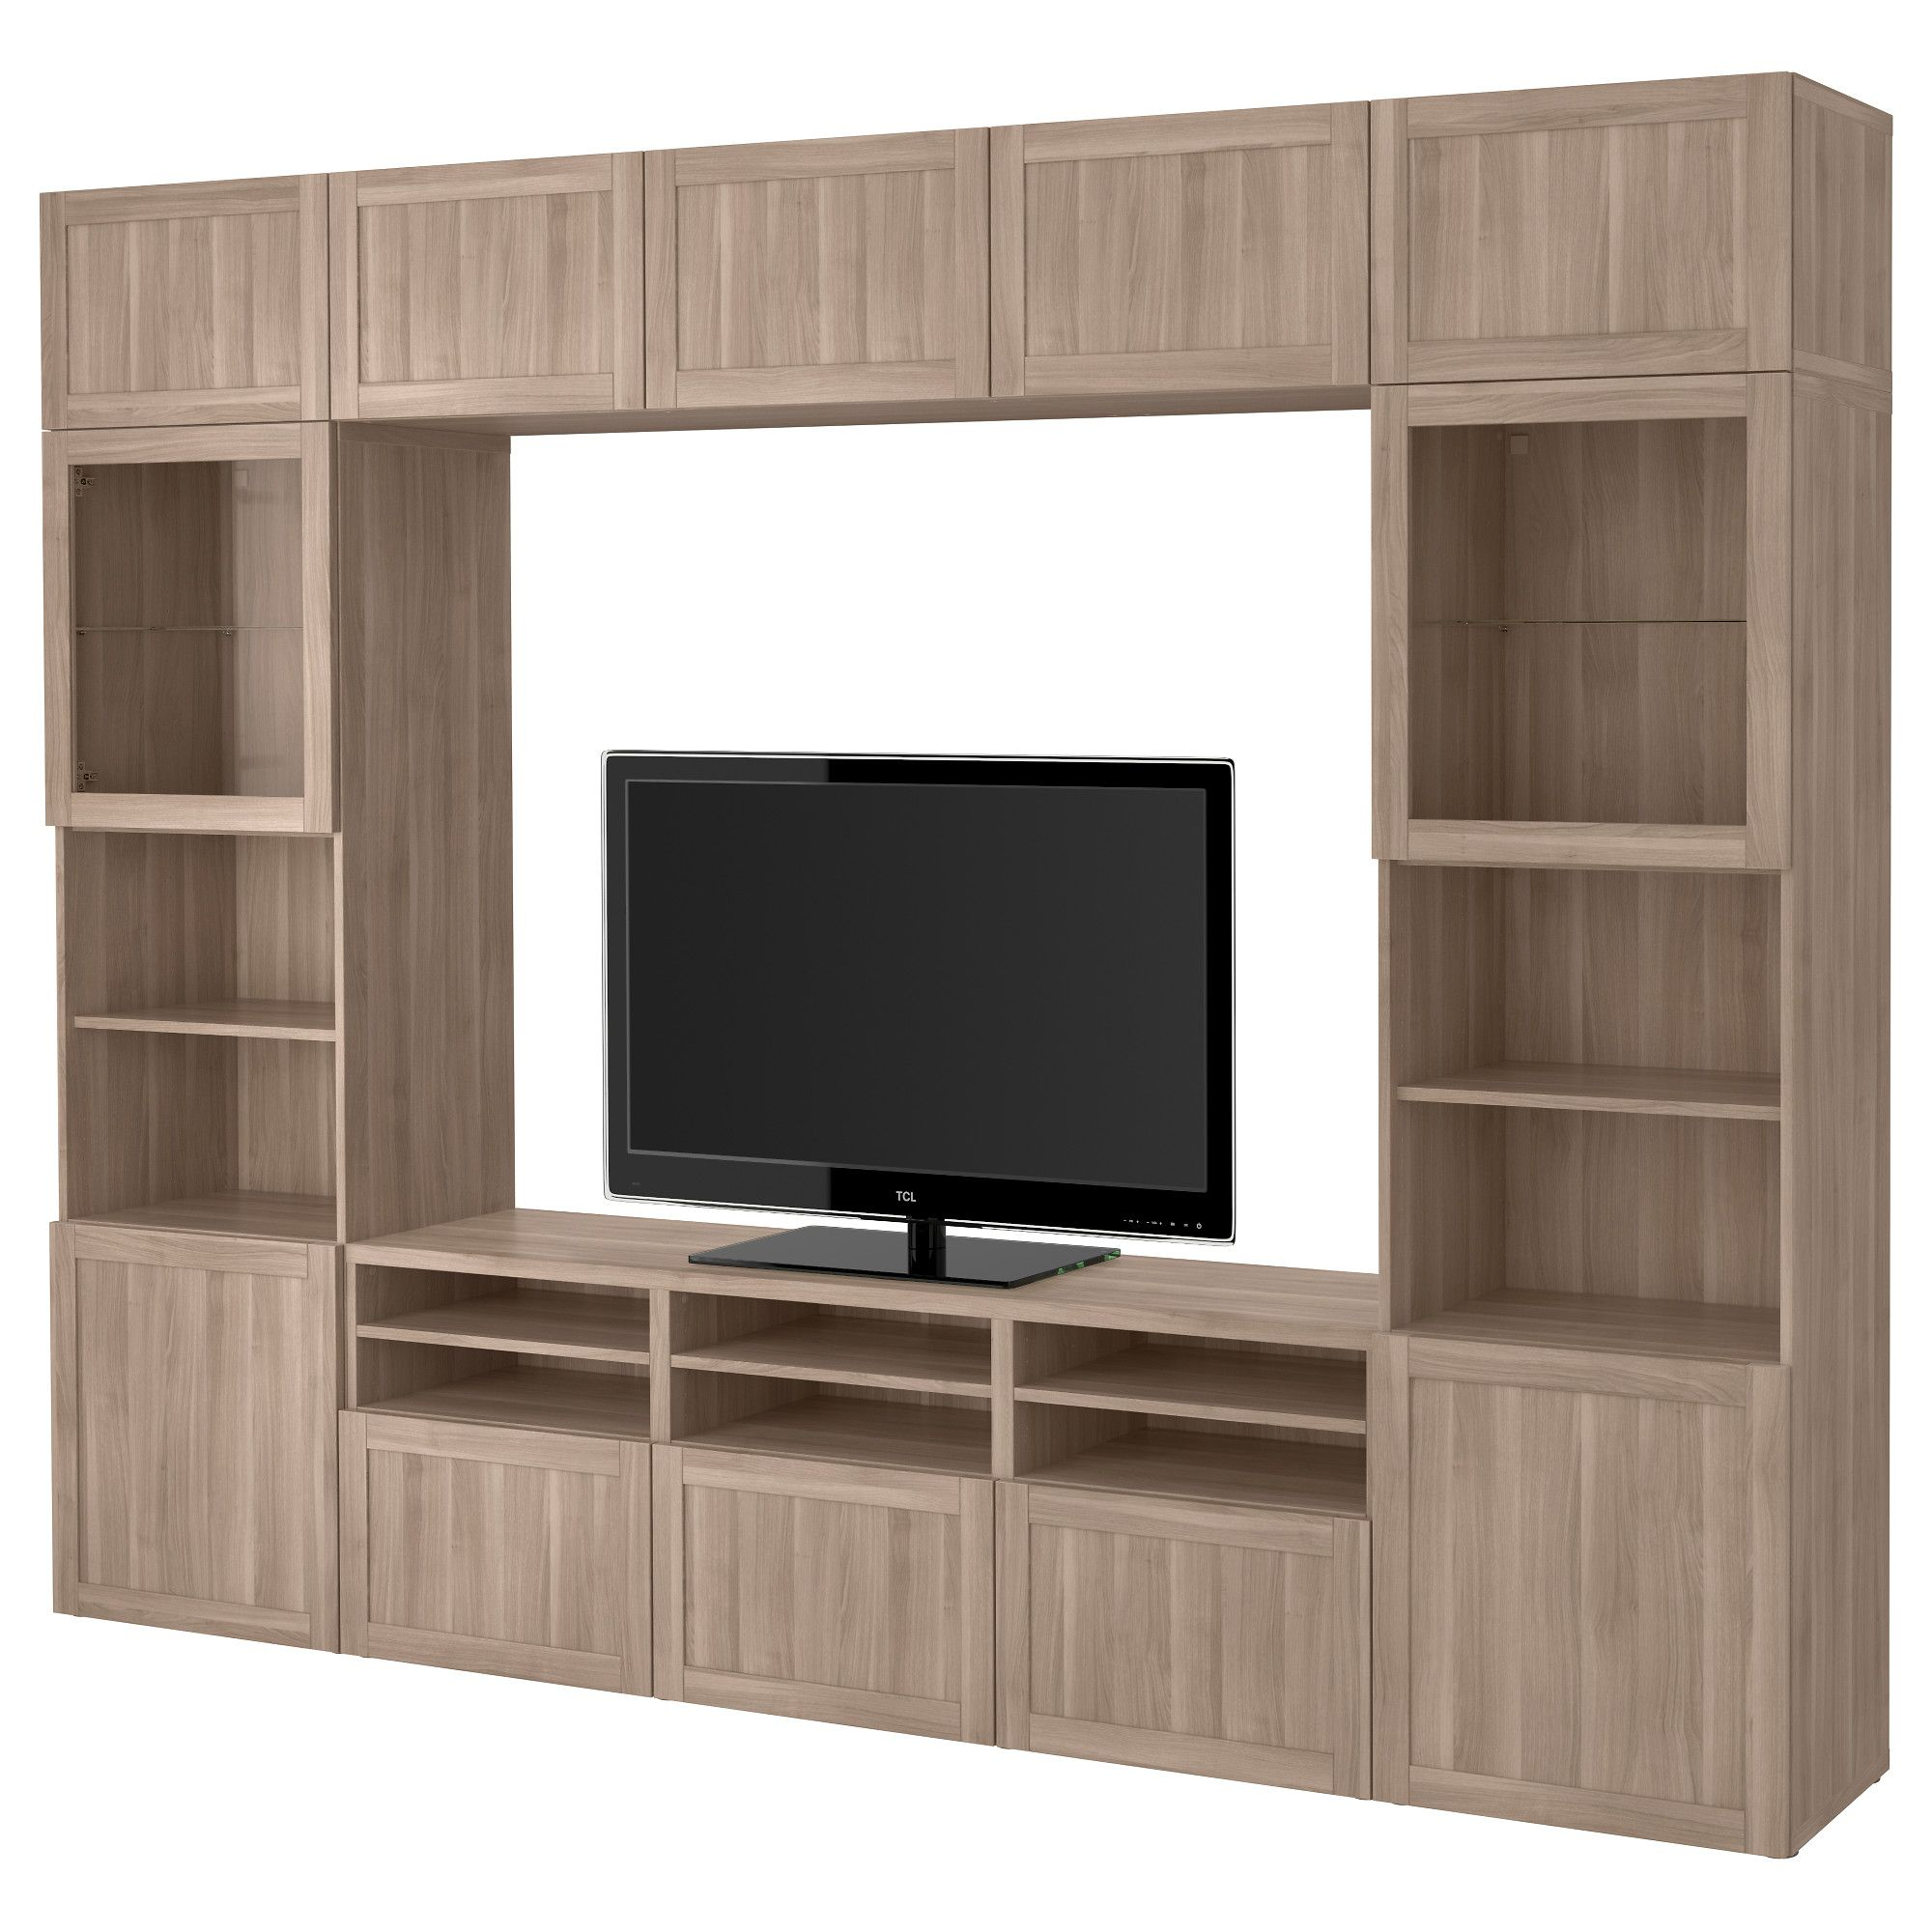 Tv Helping Push Kitchens Off The Shelf: BESTÅ, TV Storage Combination/glass Doors, Walnut